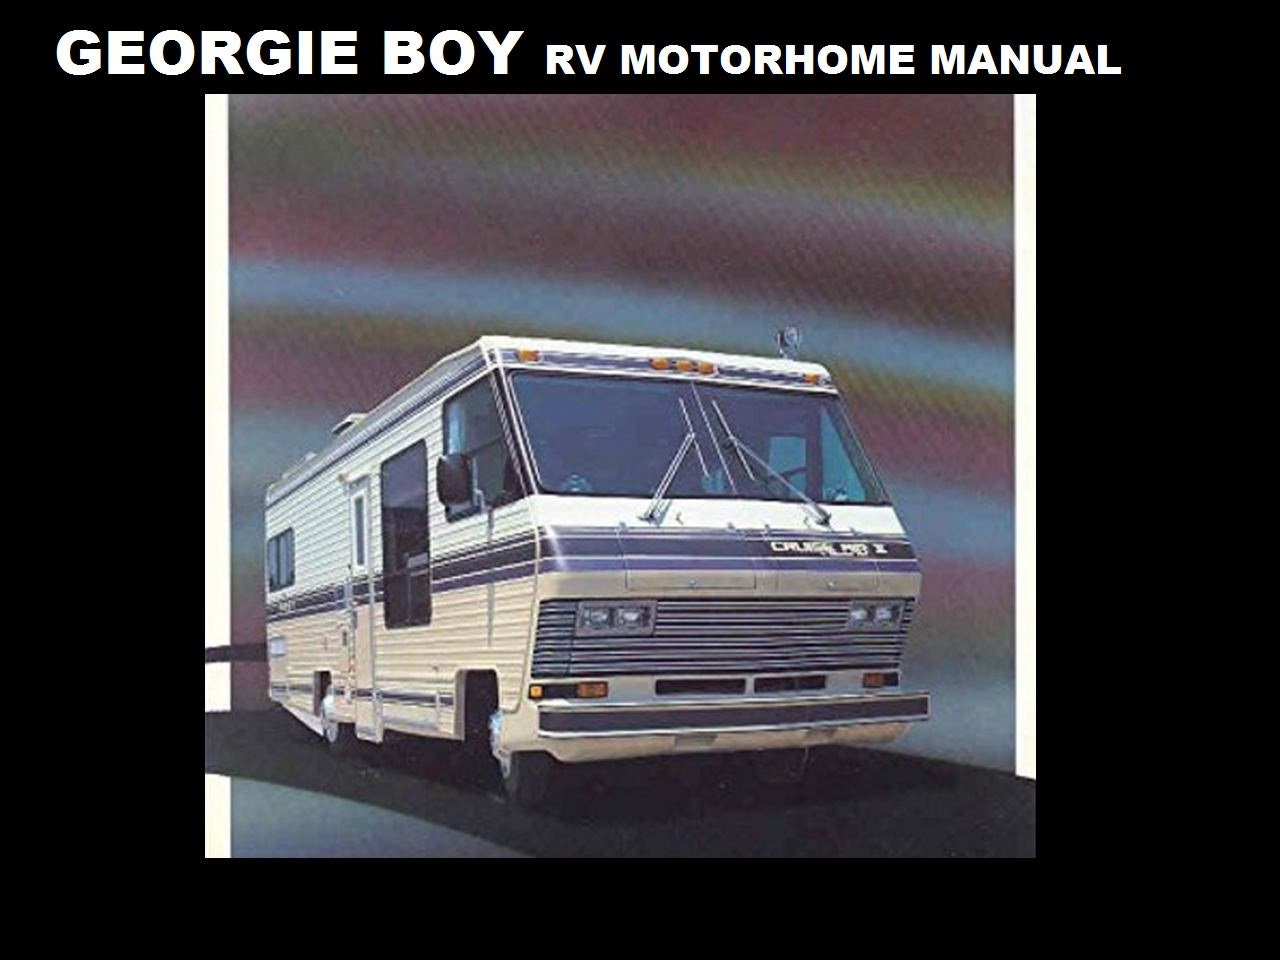 5915a5 Georgie Boy 1980 1990 Motorhome Manuals 410 Pgs With Rv Etsy Wiring Library